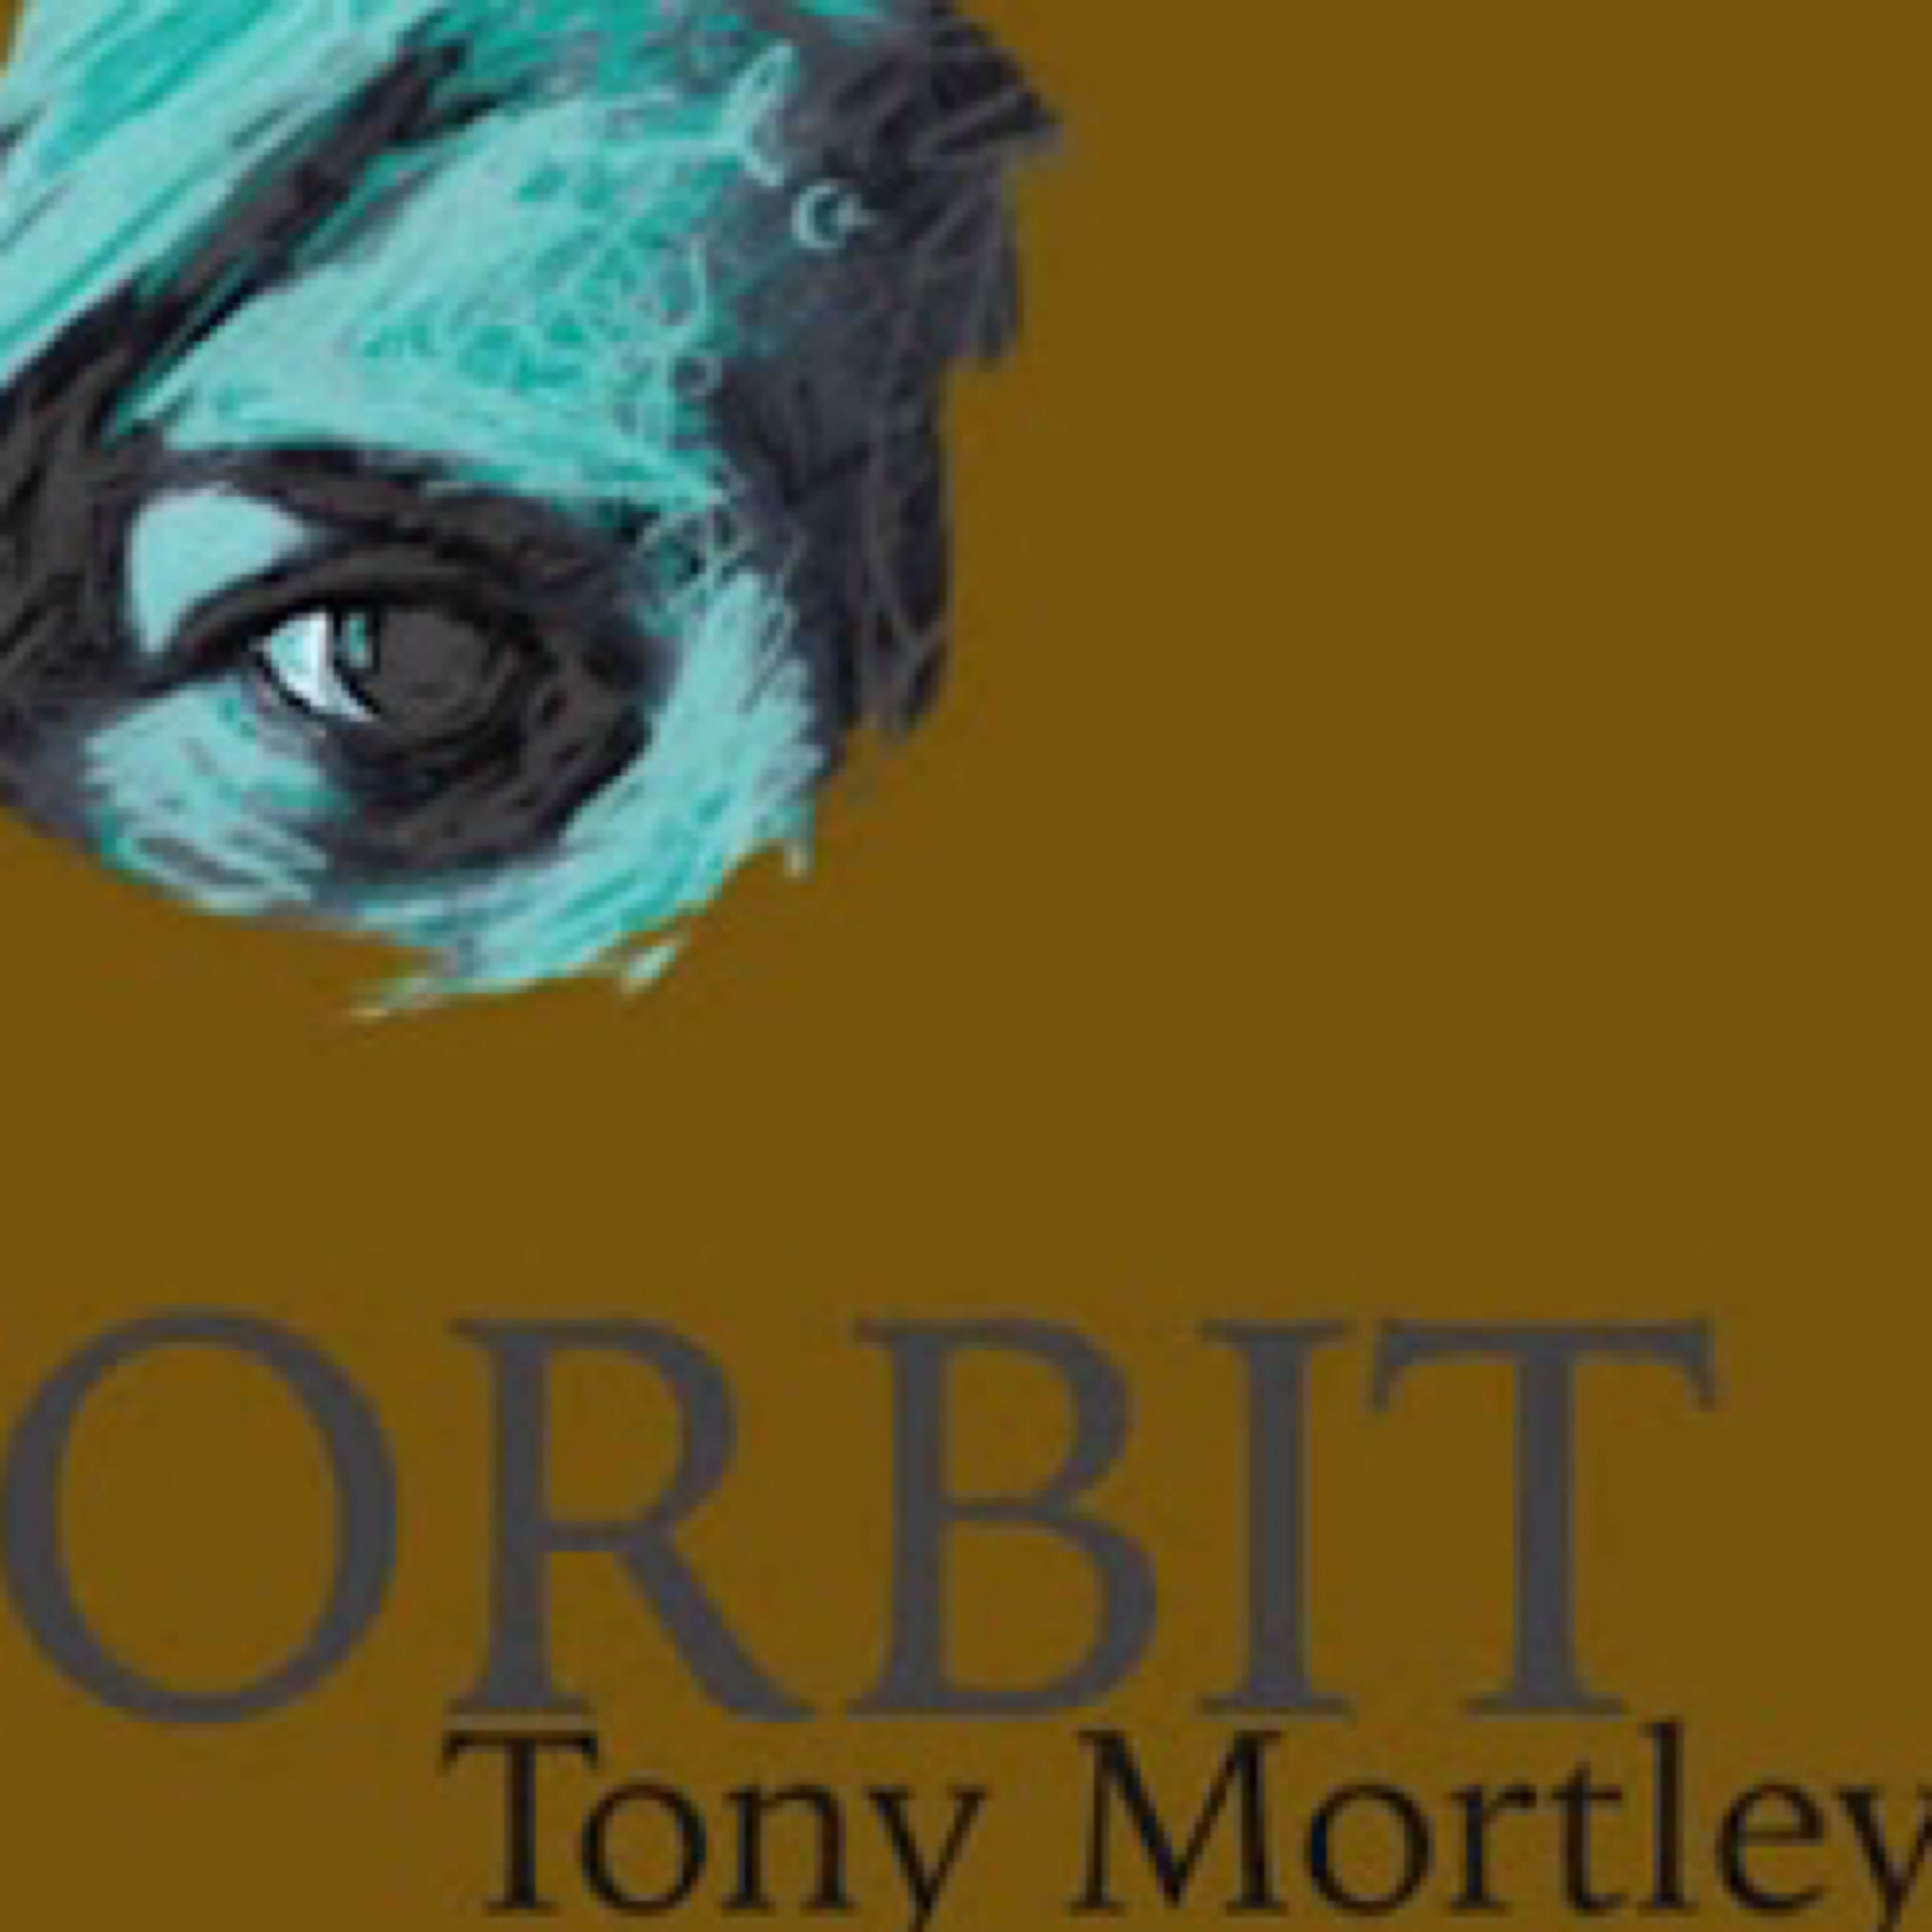 Rising Guitarist to Release New Acoustic Songs Narrating Tales Bound to Intrigue: Tony Mortley Set to Inspire with New Music